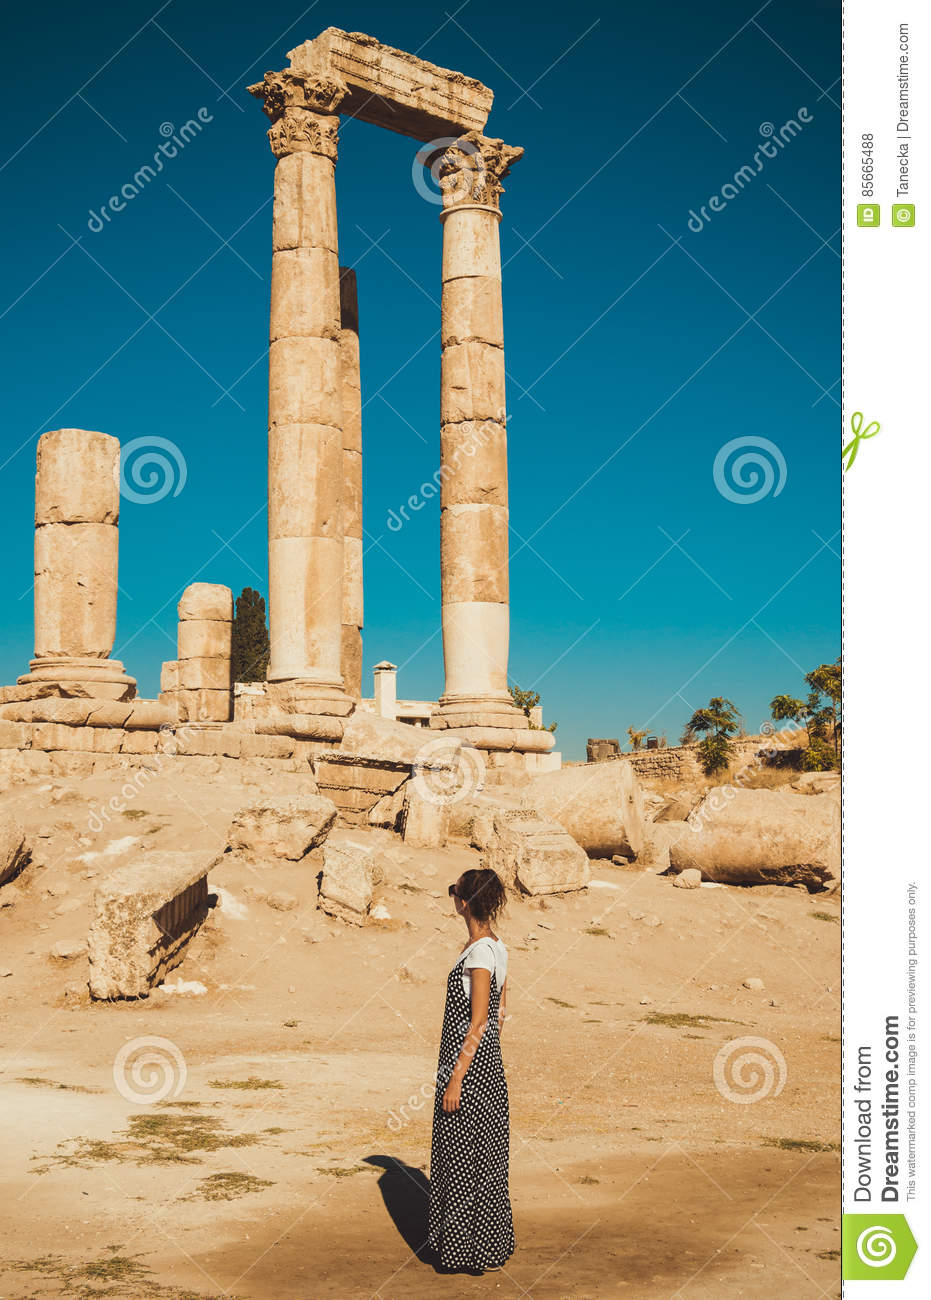 Female tourist in long sundress visit and exploring historic attraction. Woman enjoy summer vacation. Sightseeing tour. Tourism in